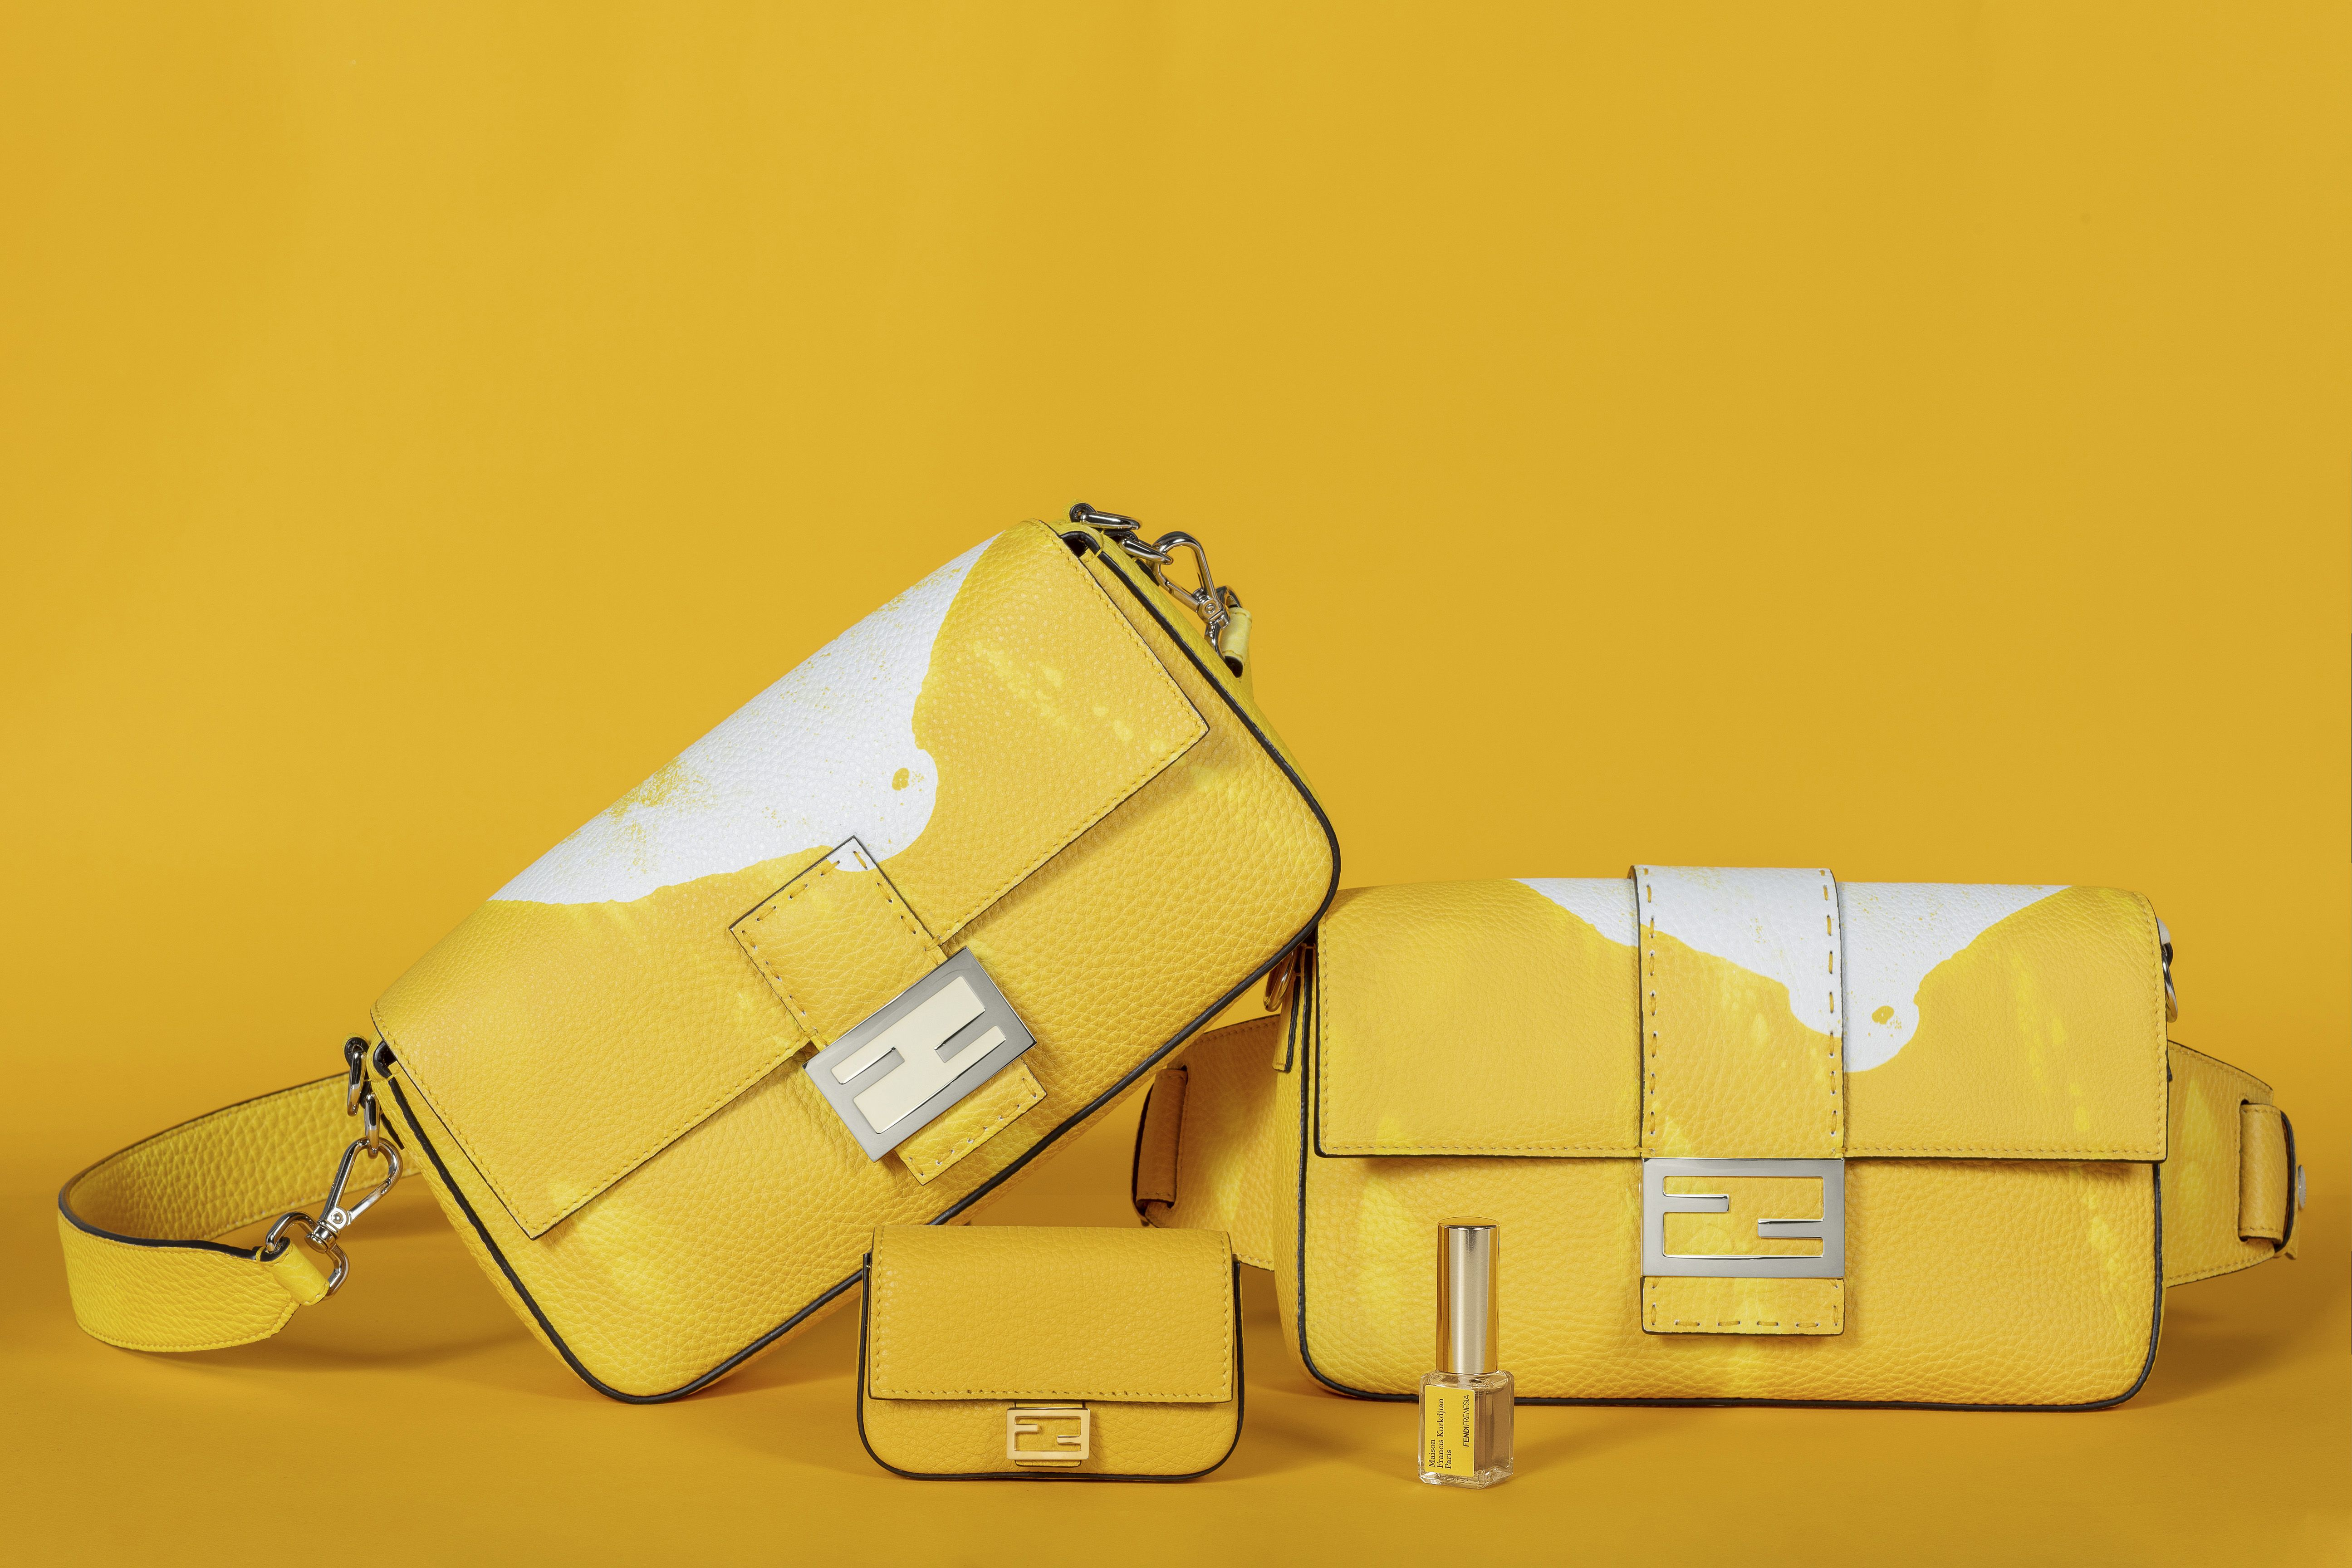 Fendi's New Scented Bag Conjures Childhood Memories